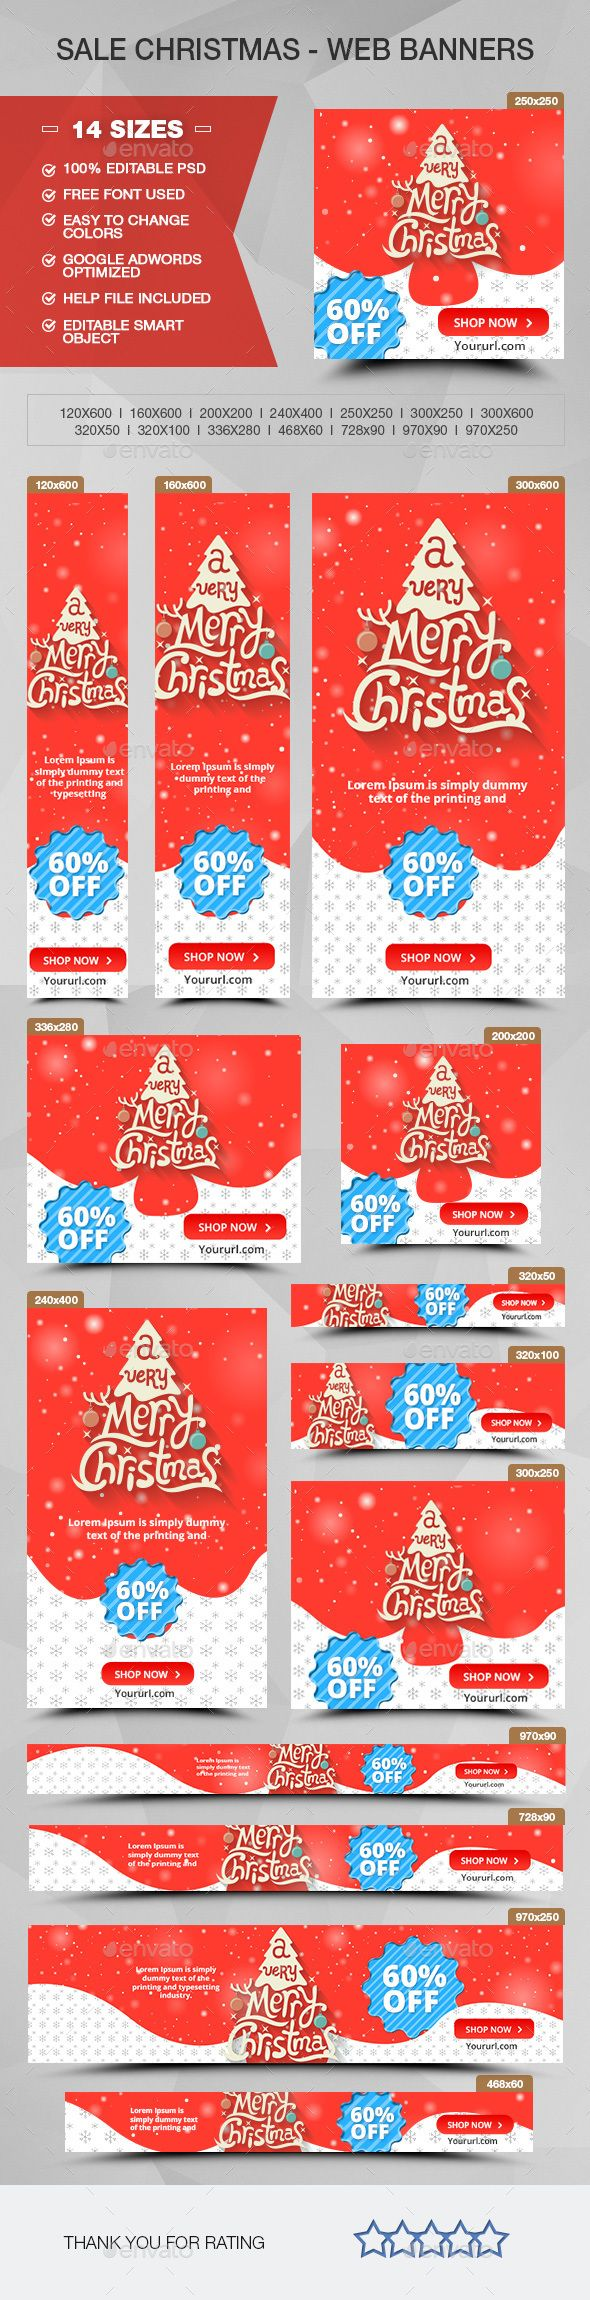 Christmas Sale Web Banners Template PSD #design #ads Download: http://graphicriver.net/item/christmas-sale-ads-banners/13964902?ref=ksioks